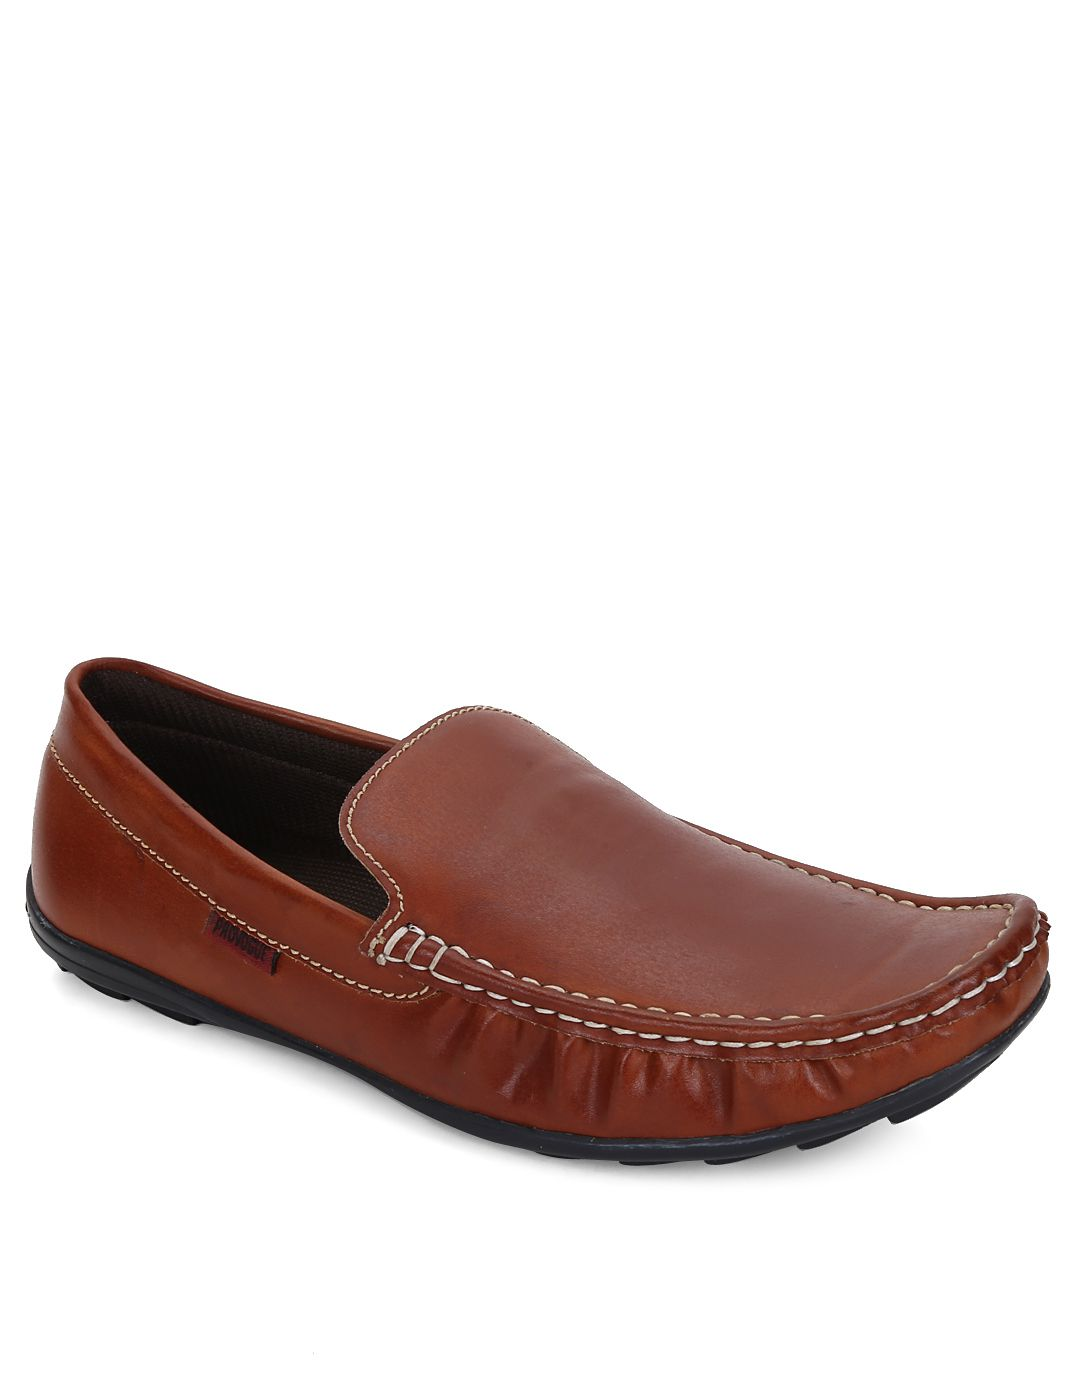 e63ad3ff202 Provogue Loafers - Buy Provogue Loafers Online at Best Prices in India on  Snapdeal